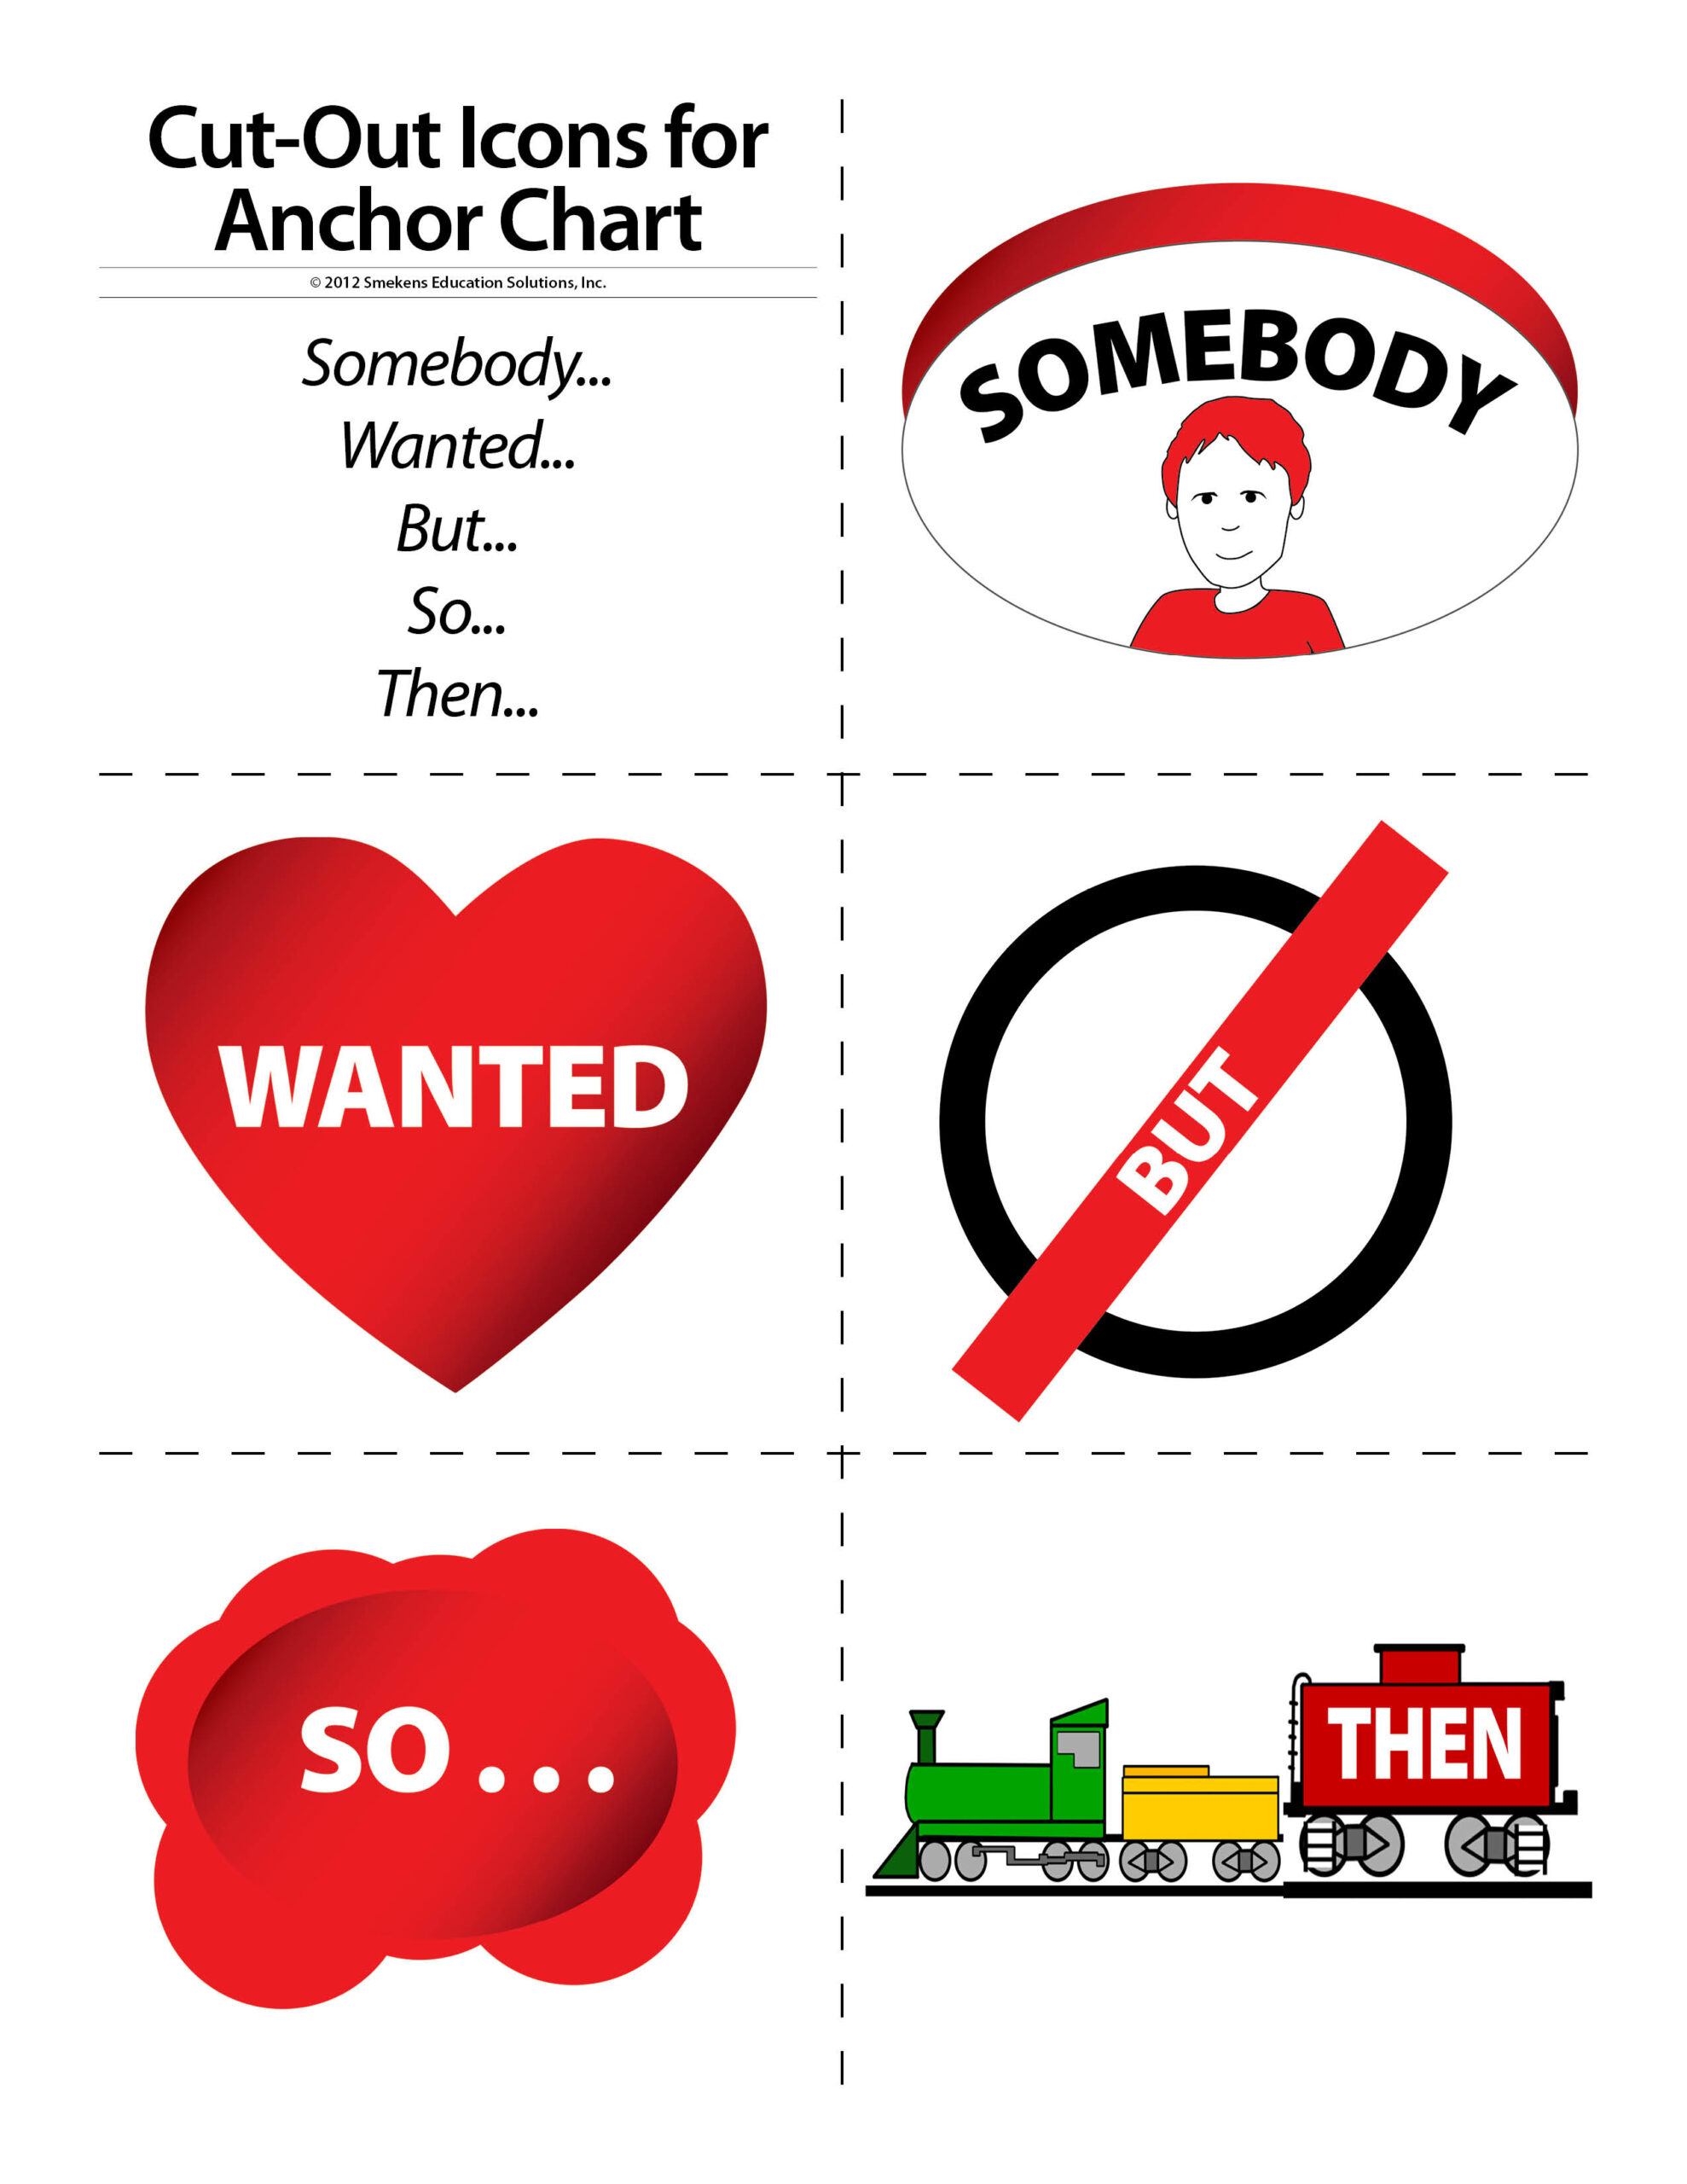 Somebody, Wanted, But, So, Then - Anchor Chart Icons